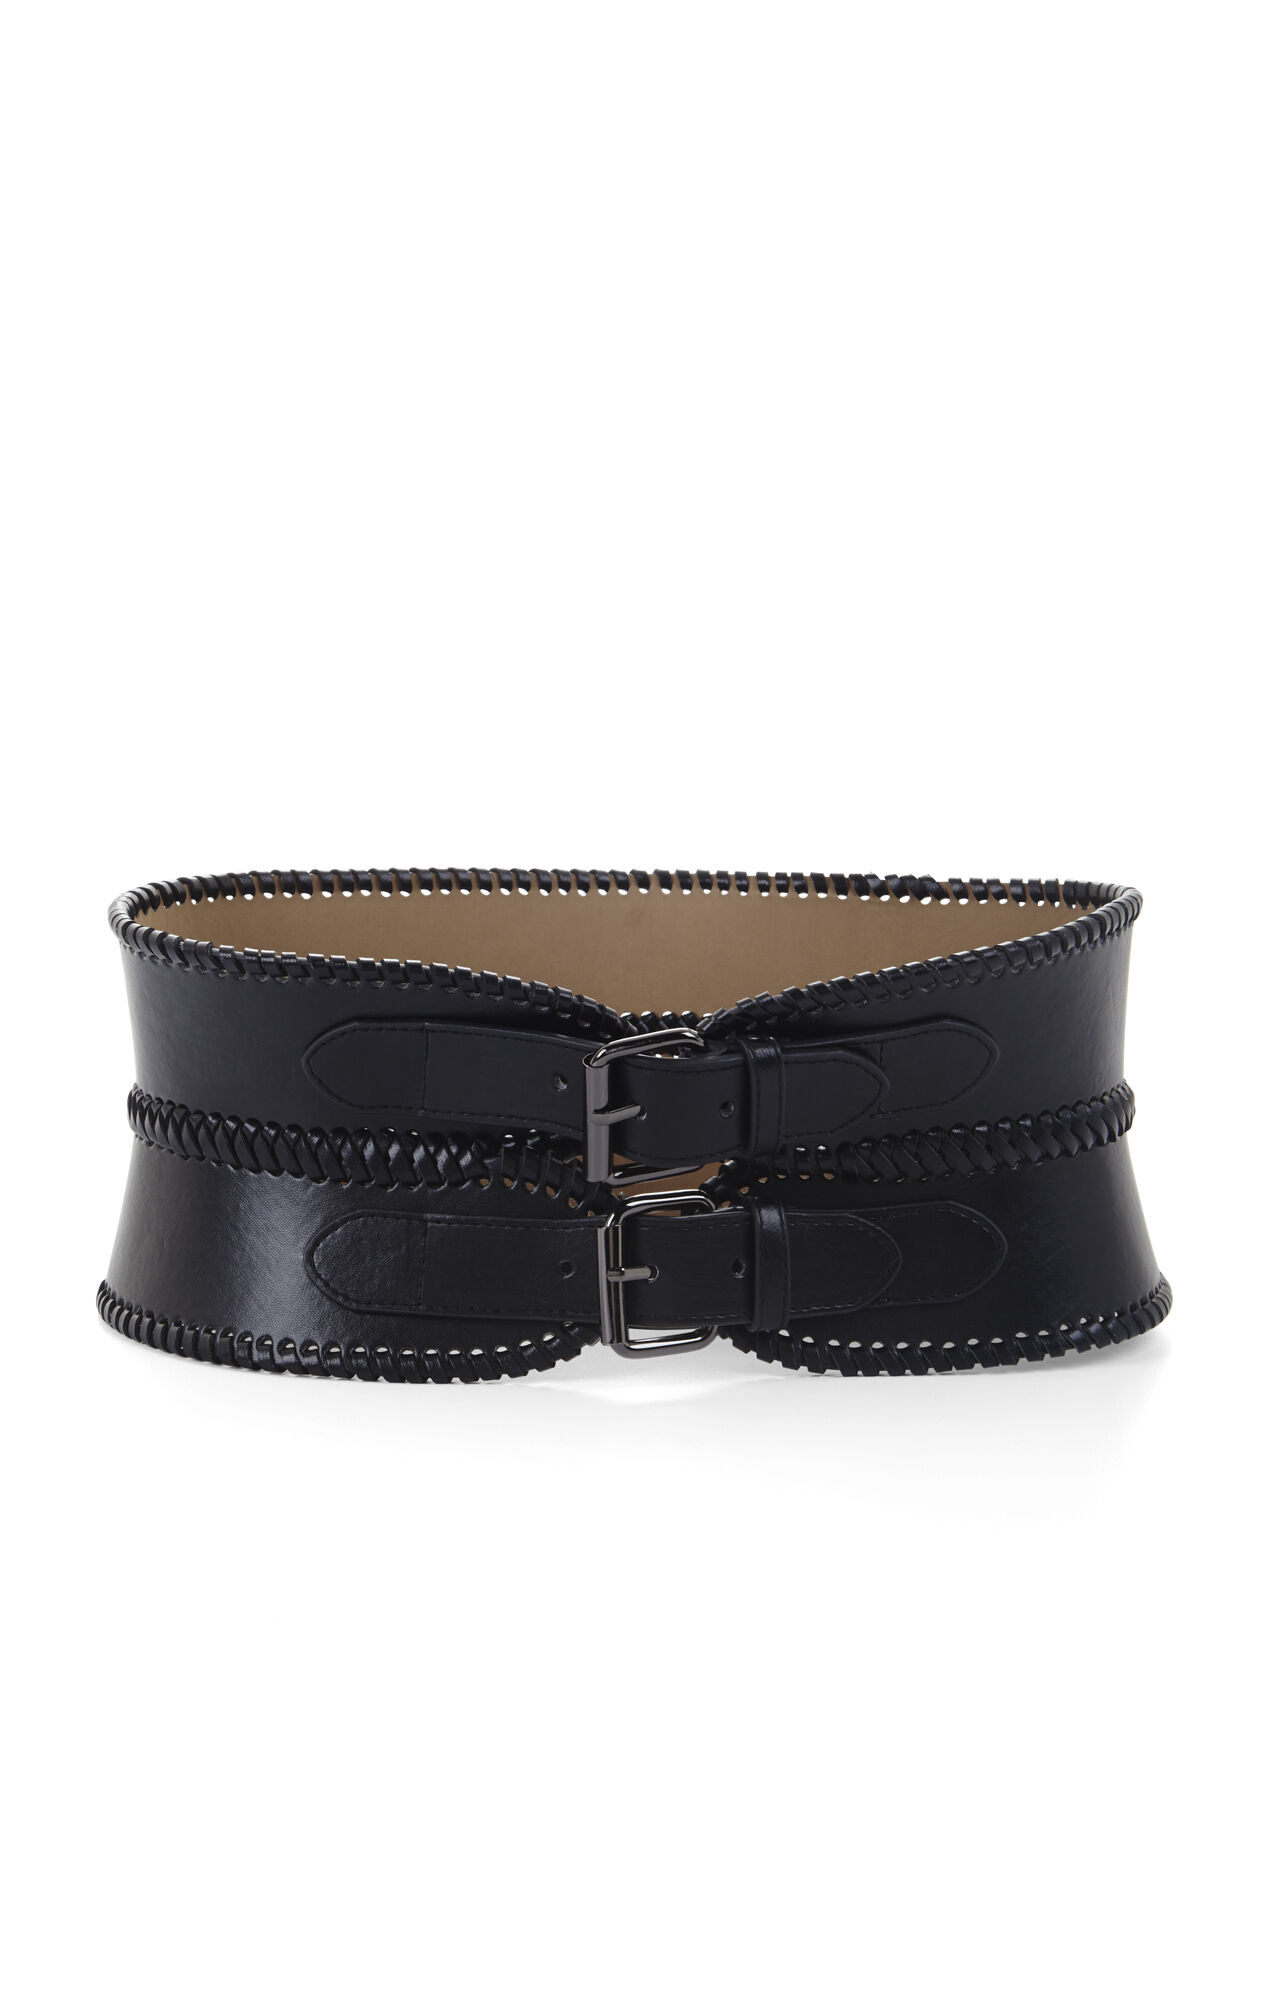 Whip-Stitched Double-Buckle Waist Belt